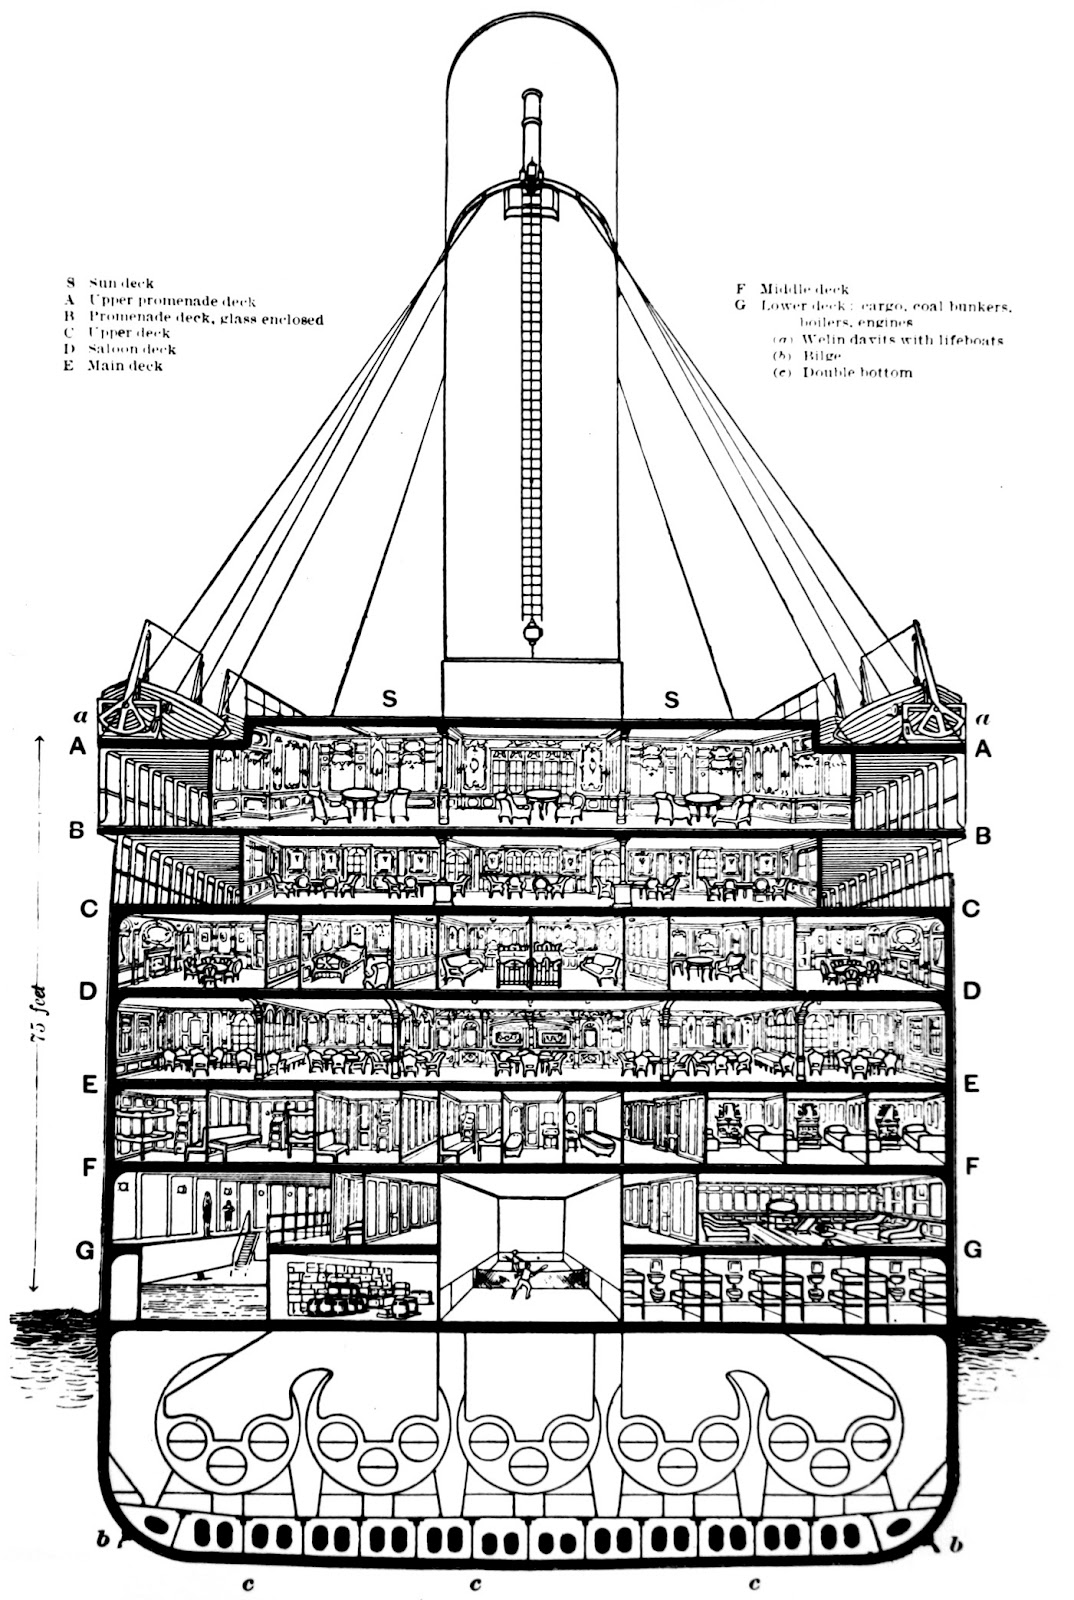 The Liberatus Floorplan 284689240 also Blueprints together with 2011 05 01 archive together with Shipbuilding innovations further Tall Ships And Maritime History. on cargo ship layout